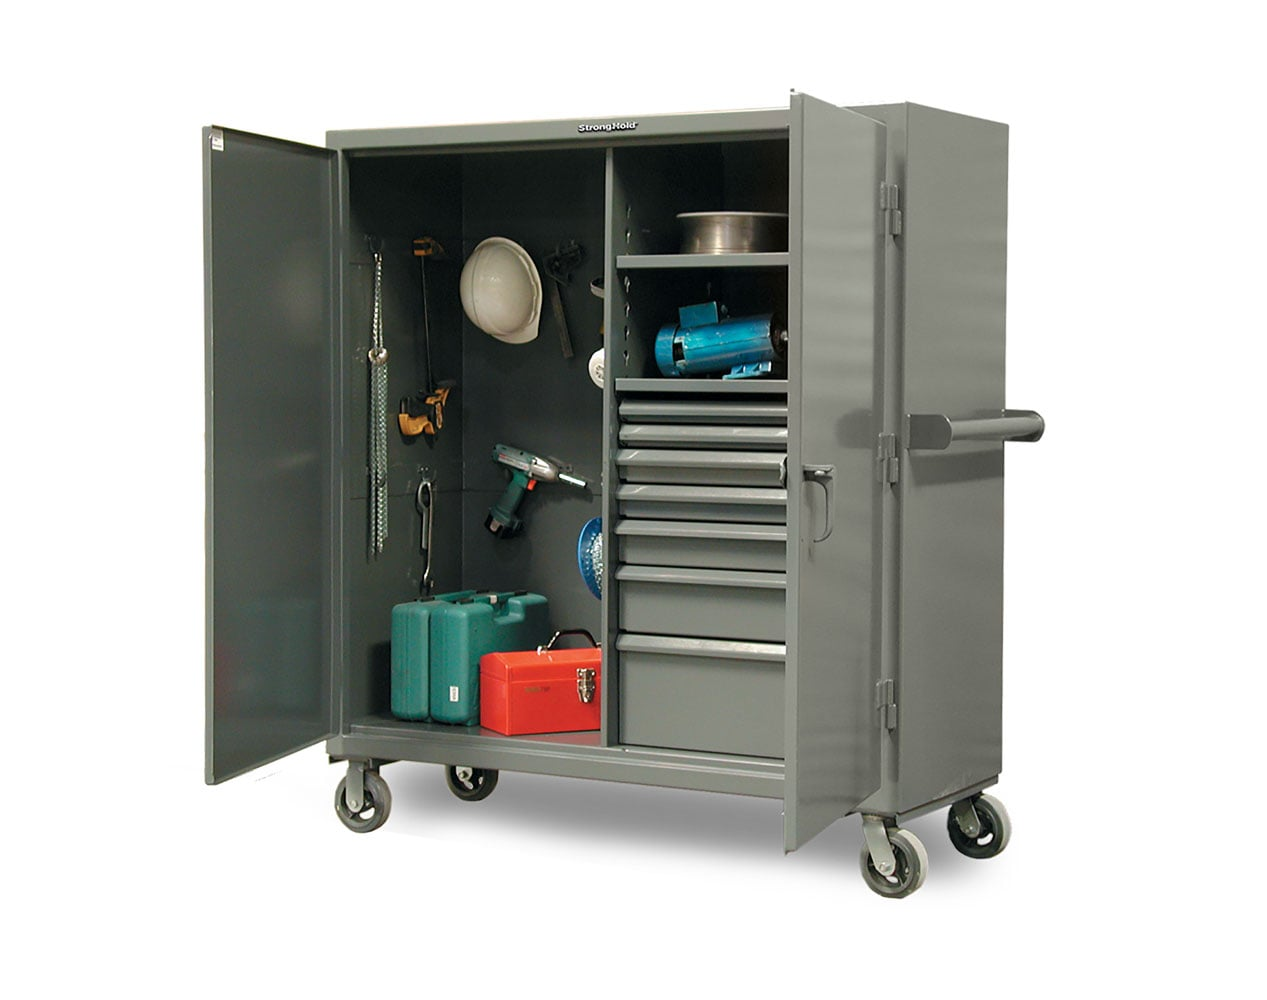 Extra Heavy Duty 12 GA Mobile Jobsite Cabinet with 7 Half-Width Drawers, 2 Shelves – 36 in. W x 24 in. D x 68 in. H